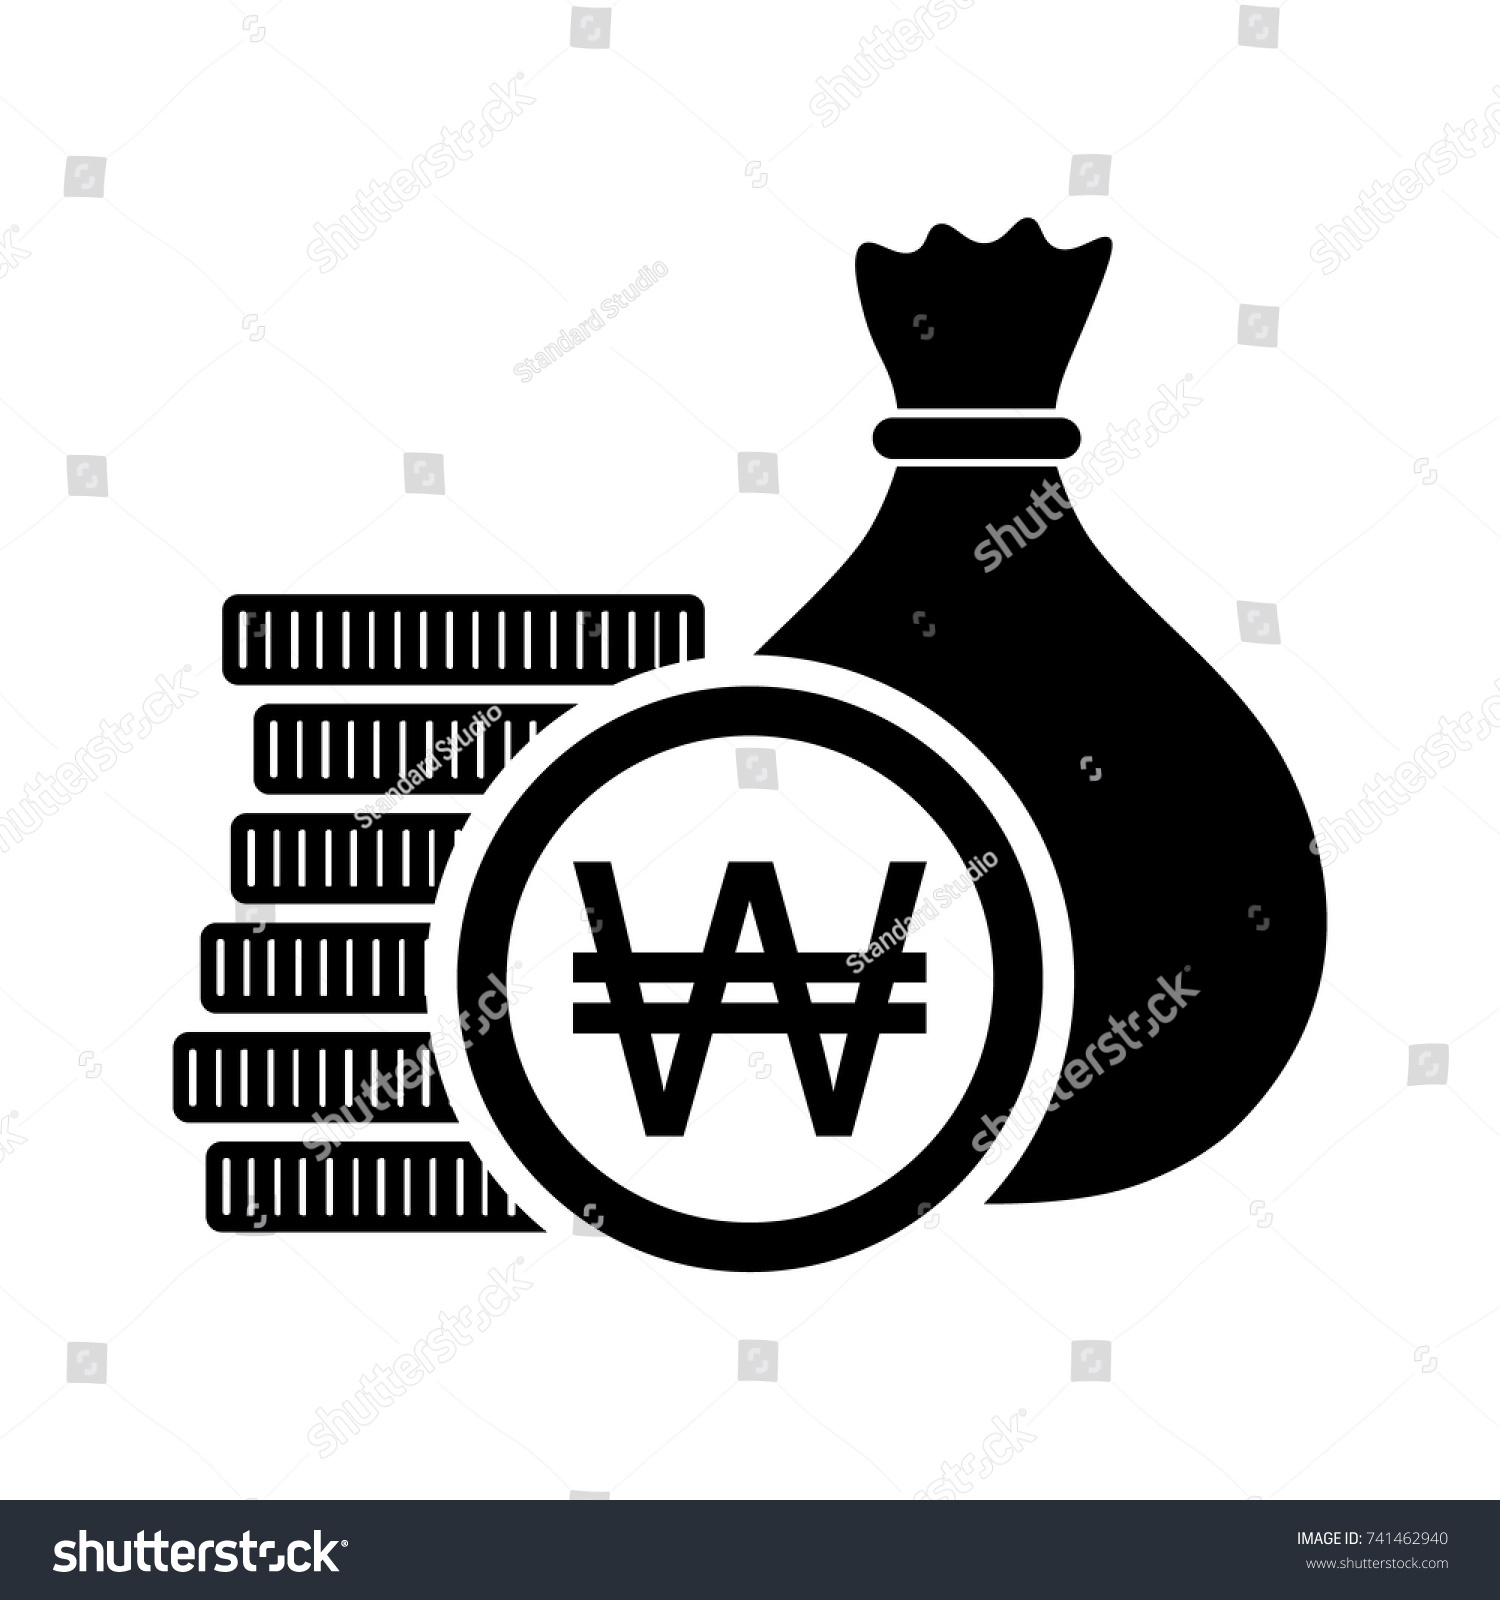 South korean won money bag coins stock vector 741462940 shutterstock south korean won money bag with coins and krw currency symbol vector illustration buycottarizona